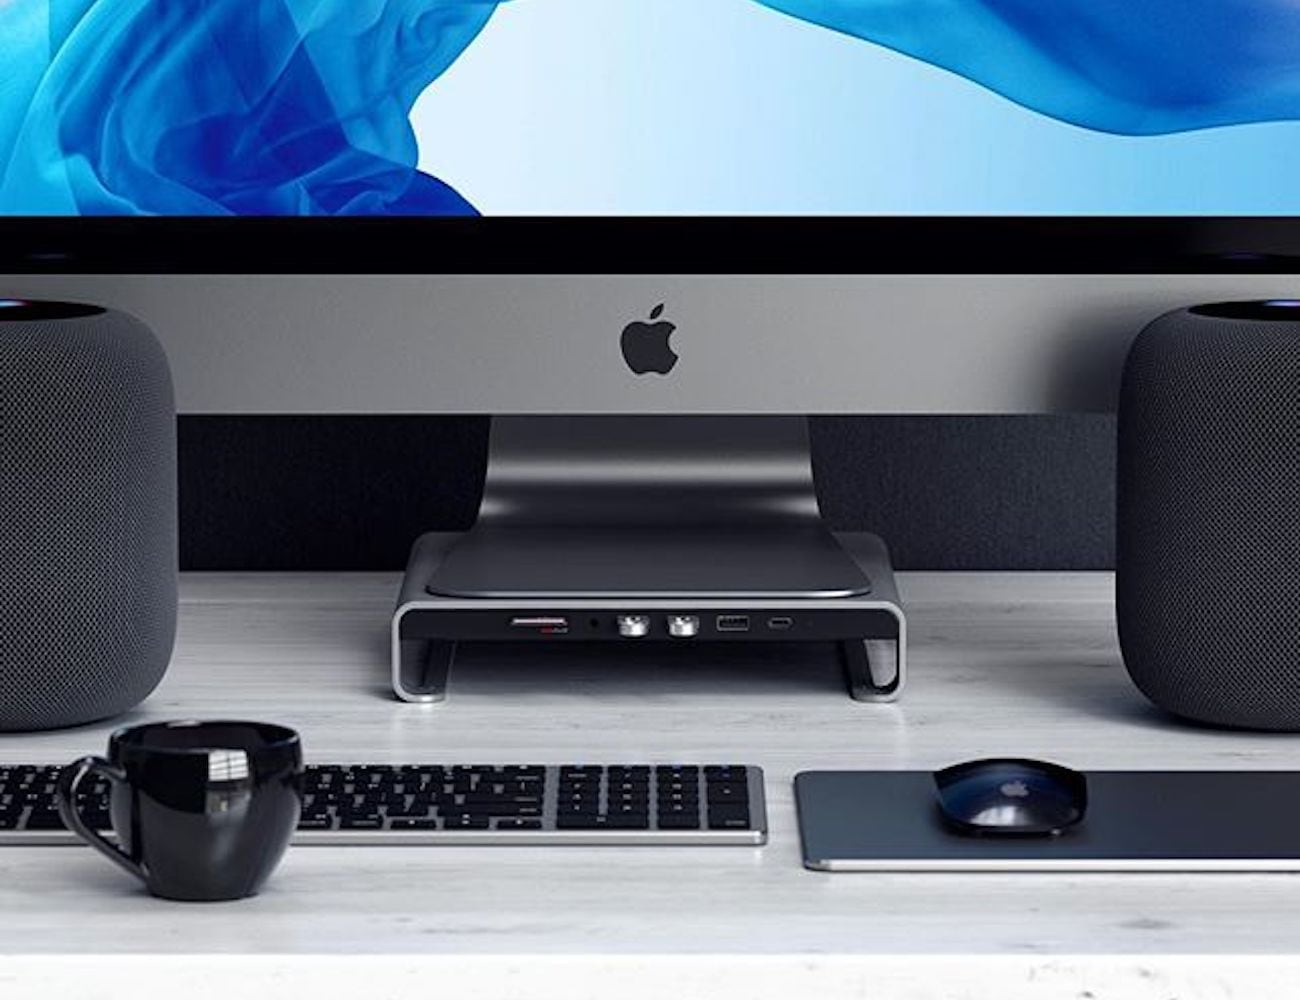 30+ Cool Mac and iMac gadgets to buy in 2020